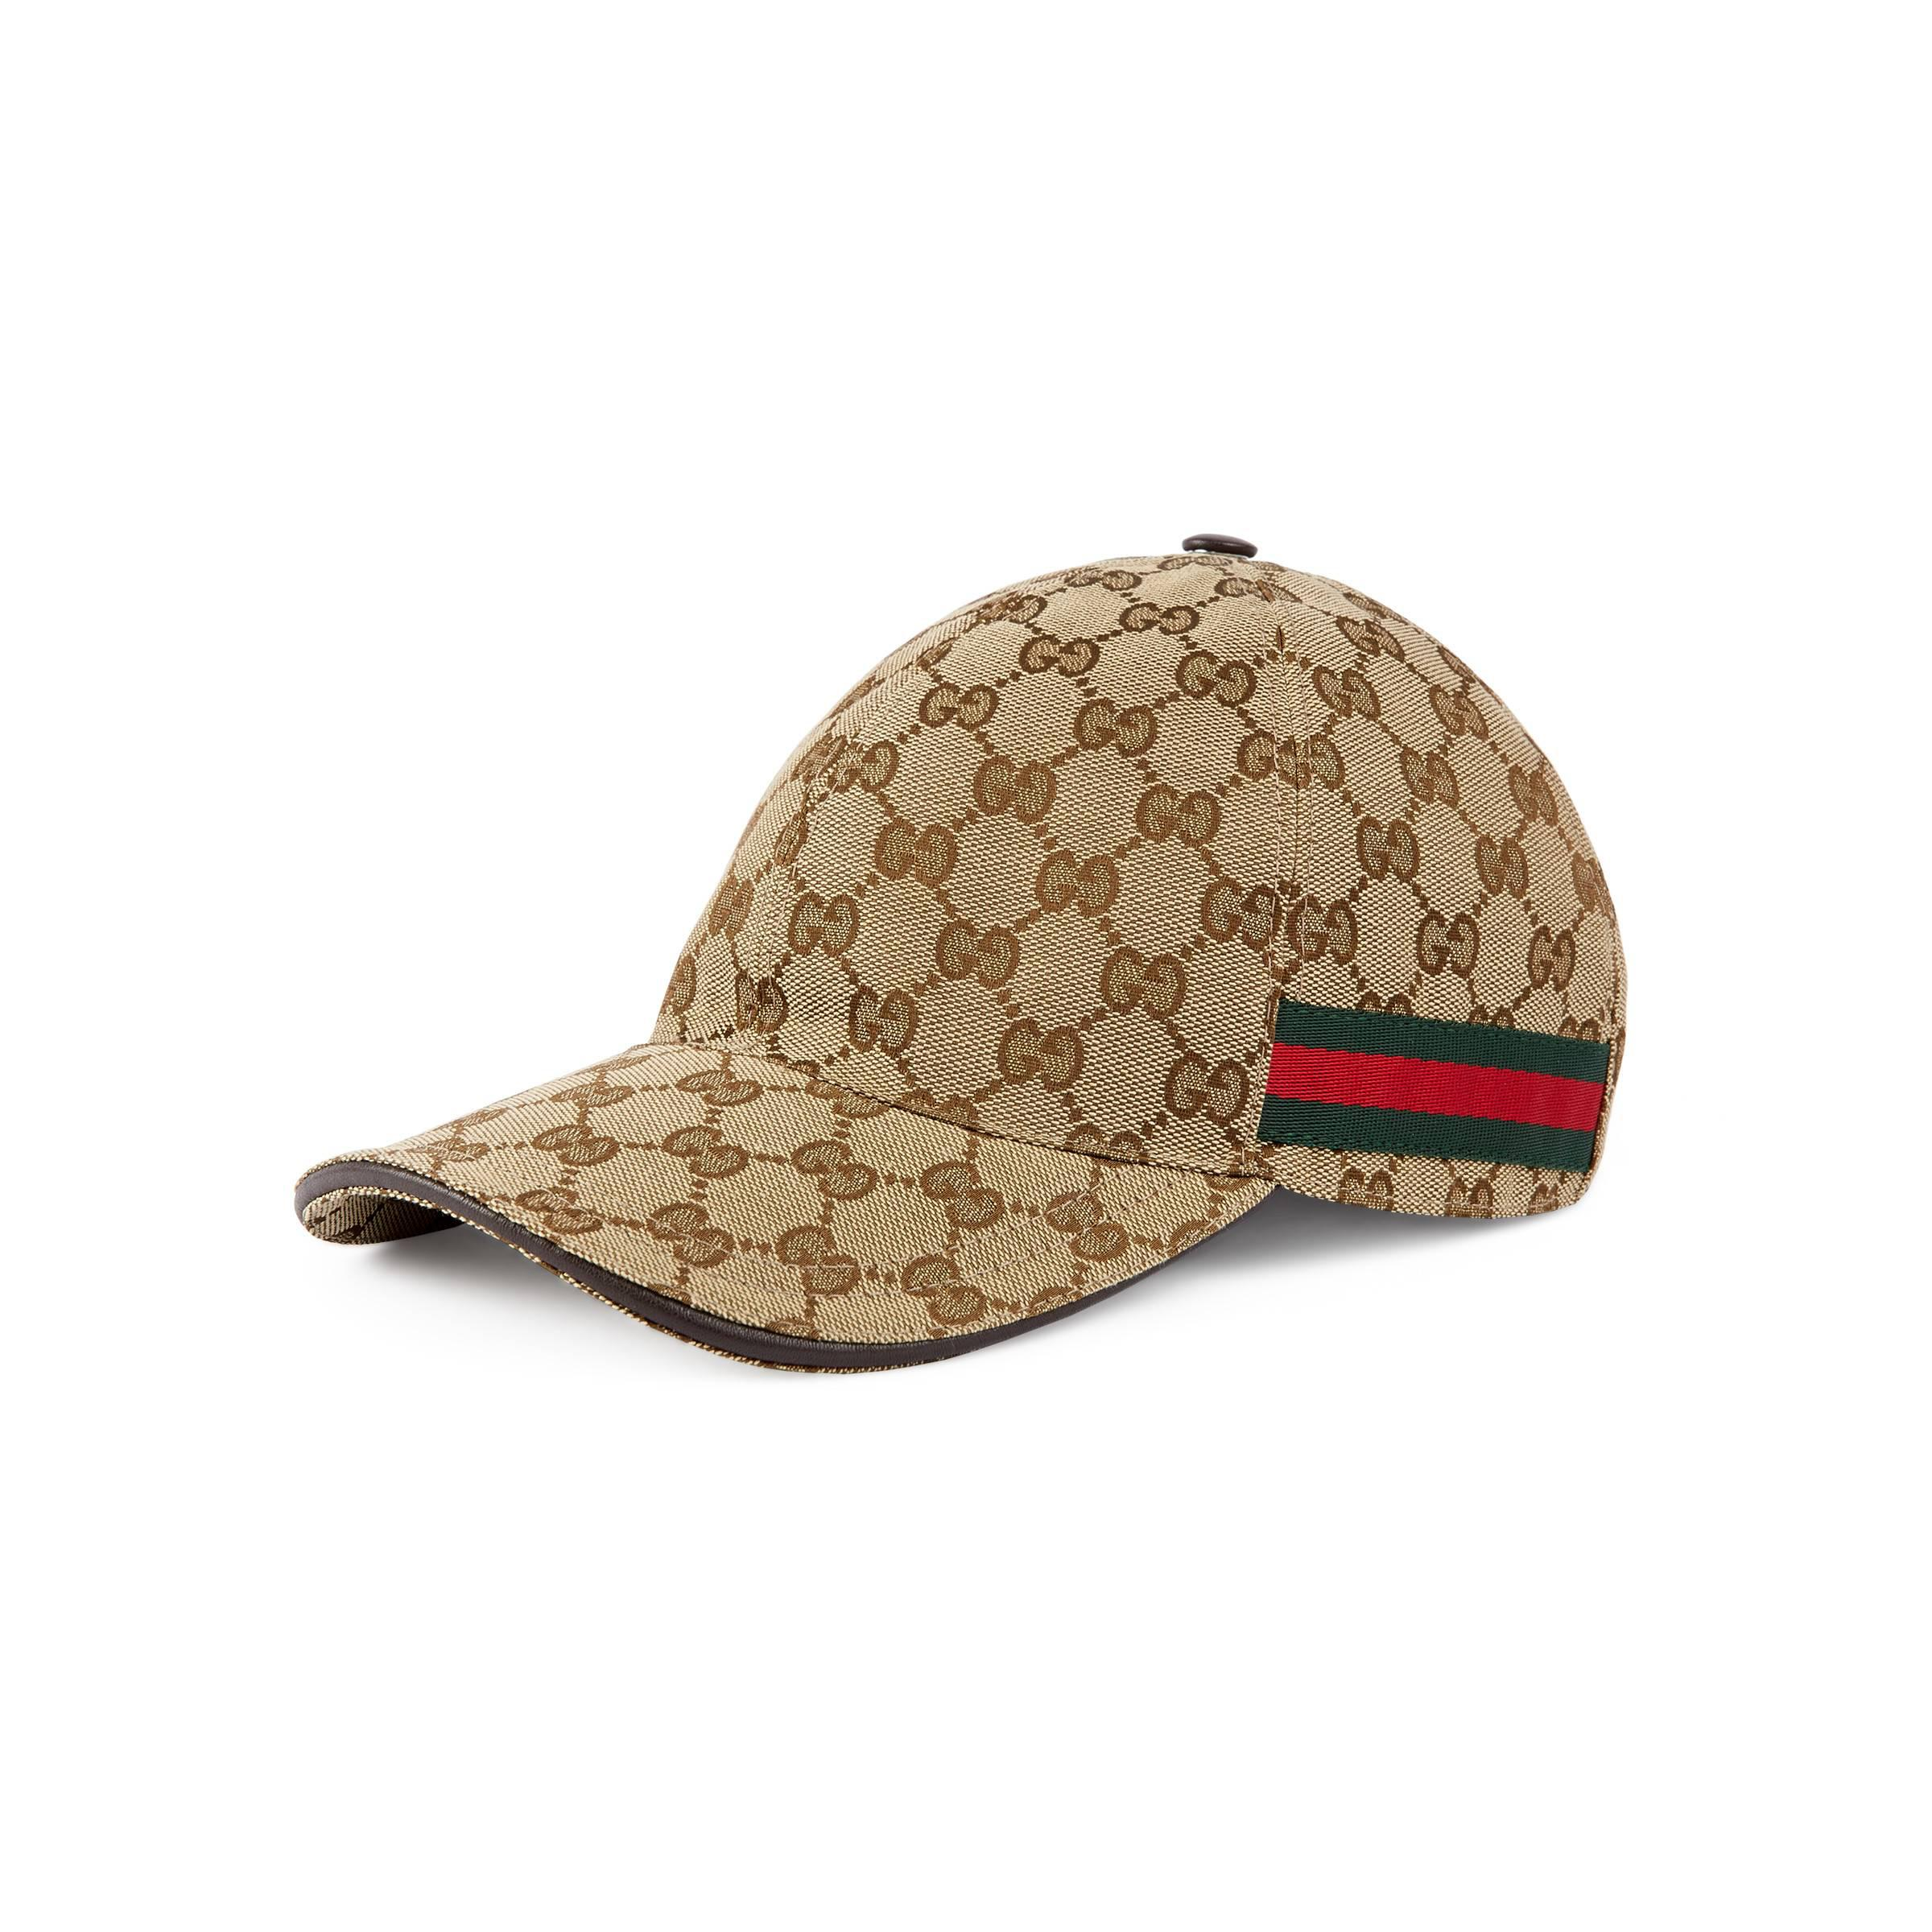 3672e203c6f Gucci Original GG Canvas Baseball Hat With Web in Natural - Save 18 ...